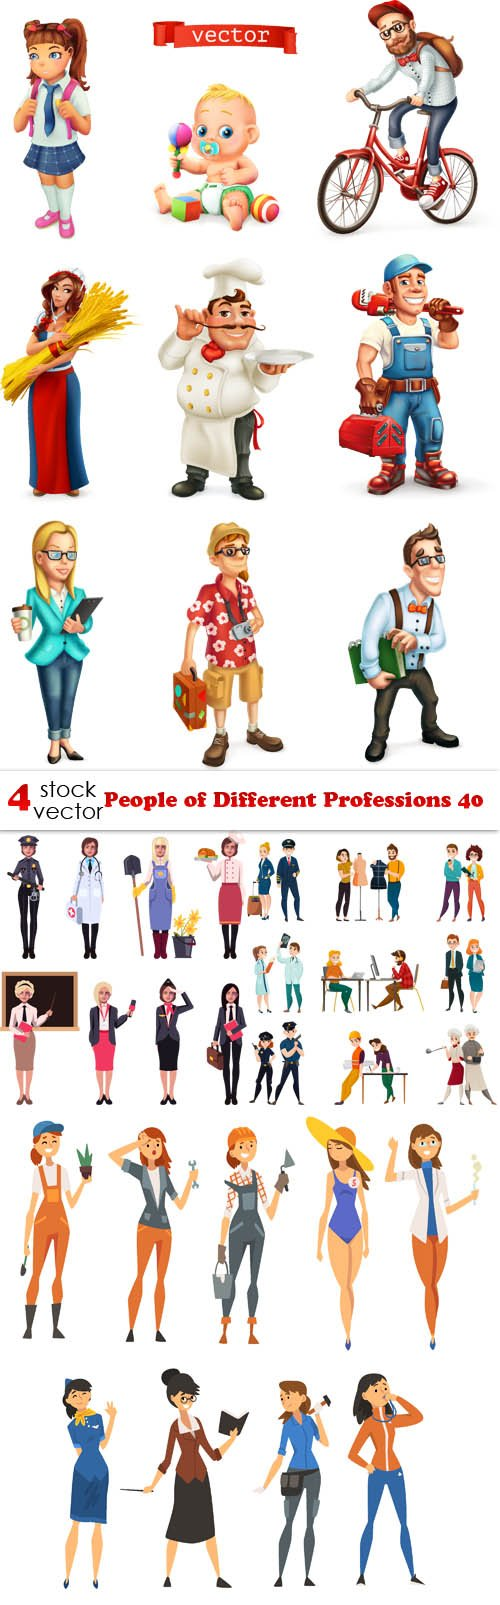 Vectors - People of Different Professions 40